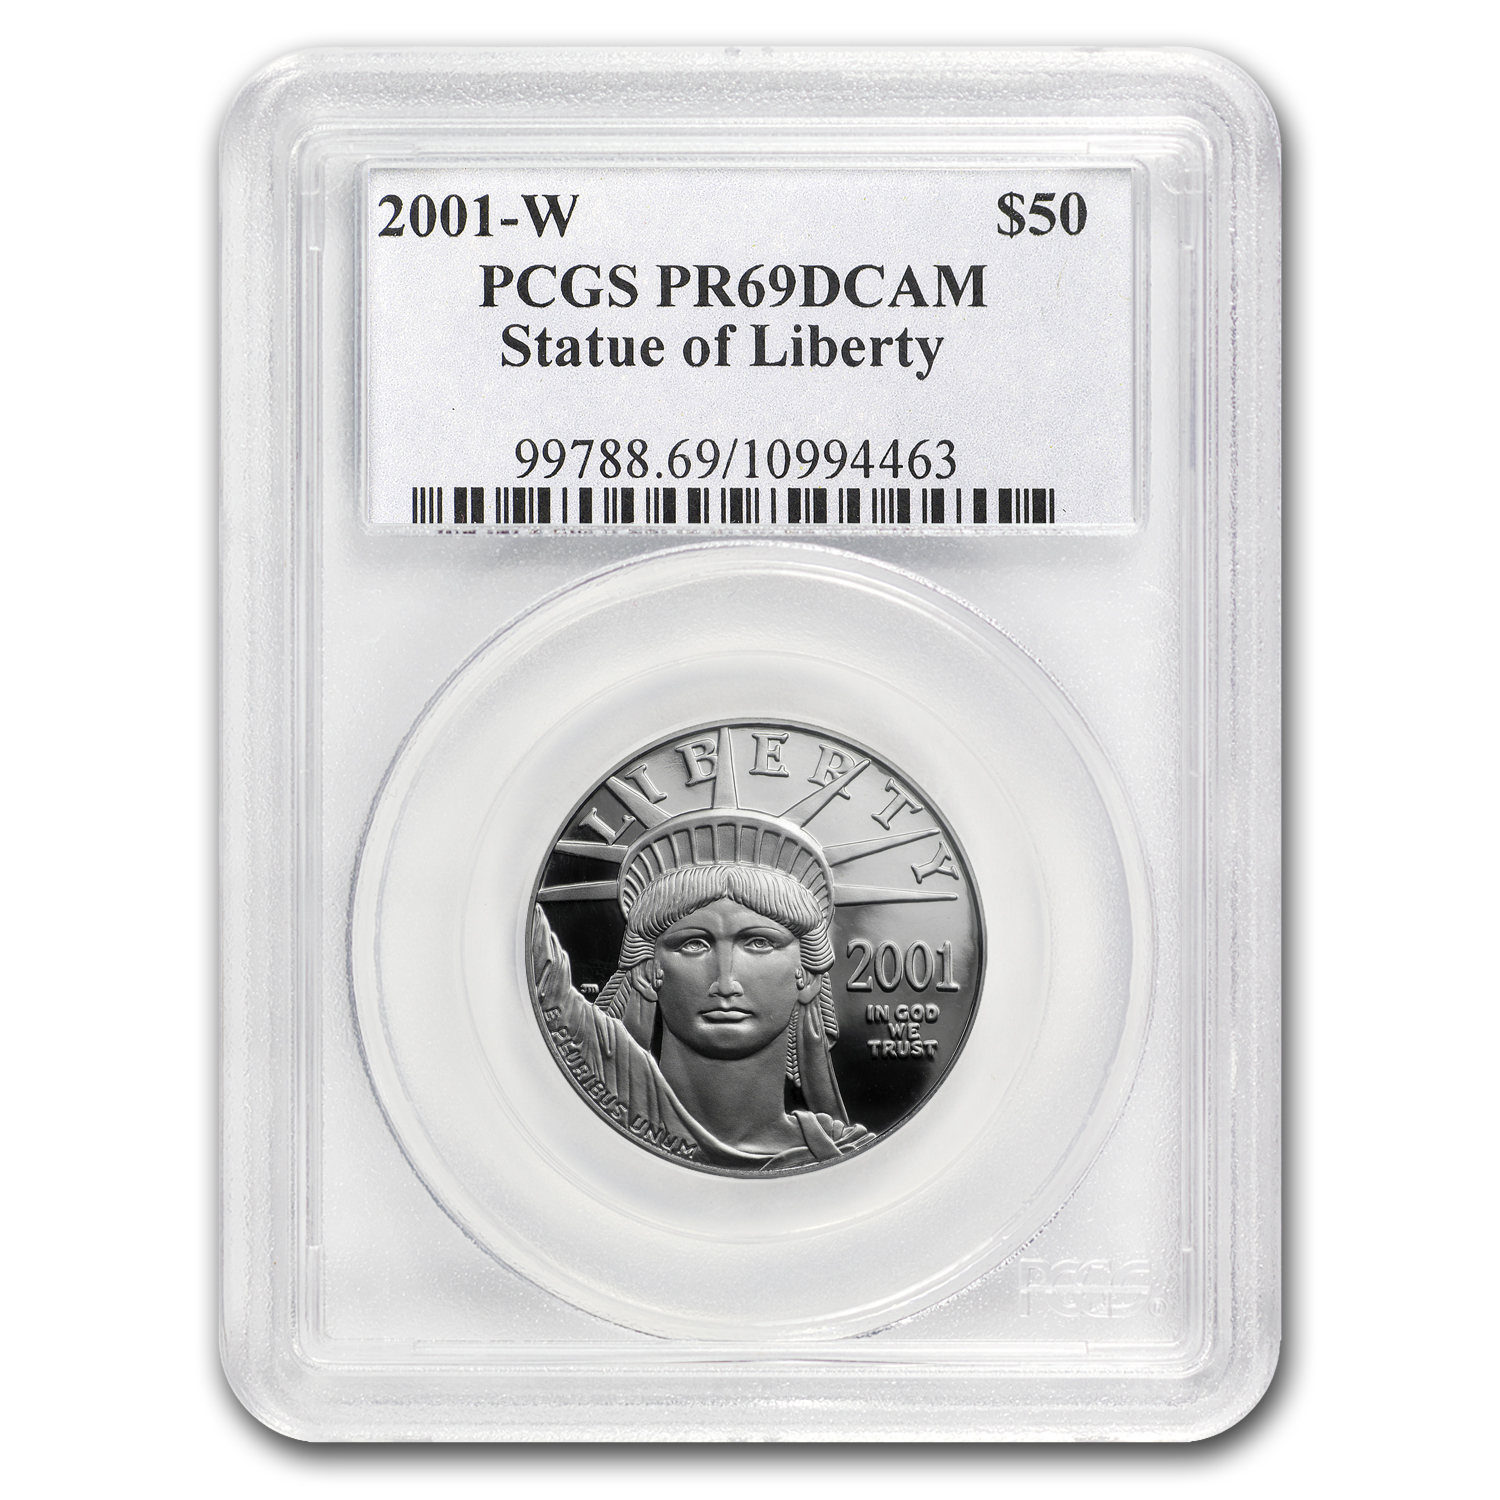 2001-W 1/2 oz Proof Platinum American Eagle PR-69 PCGS DCAM